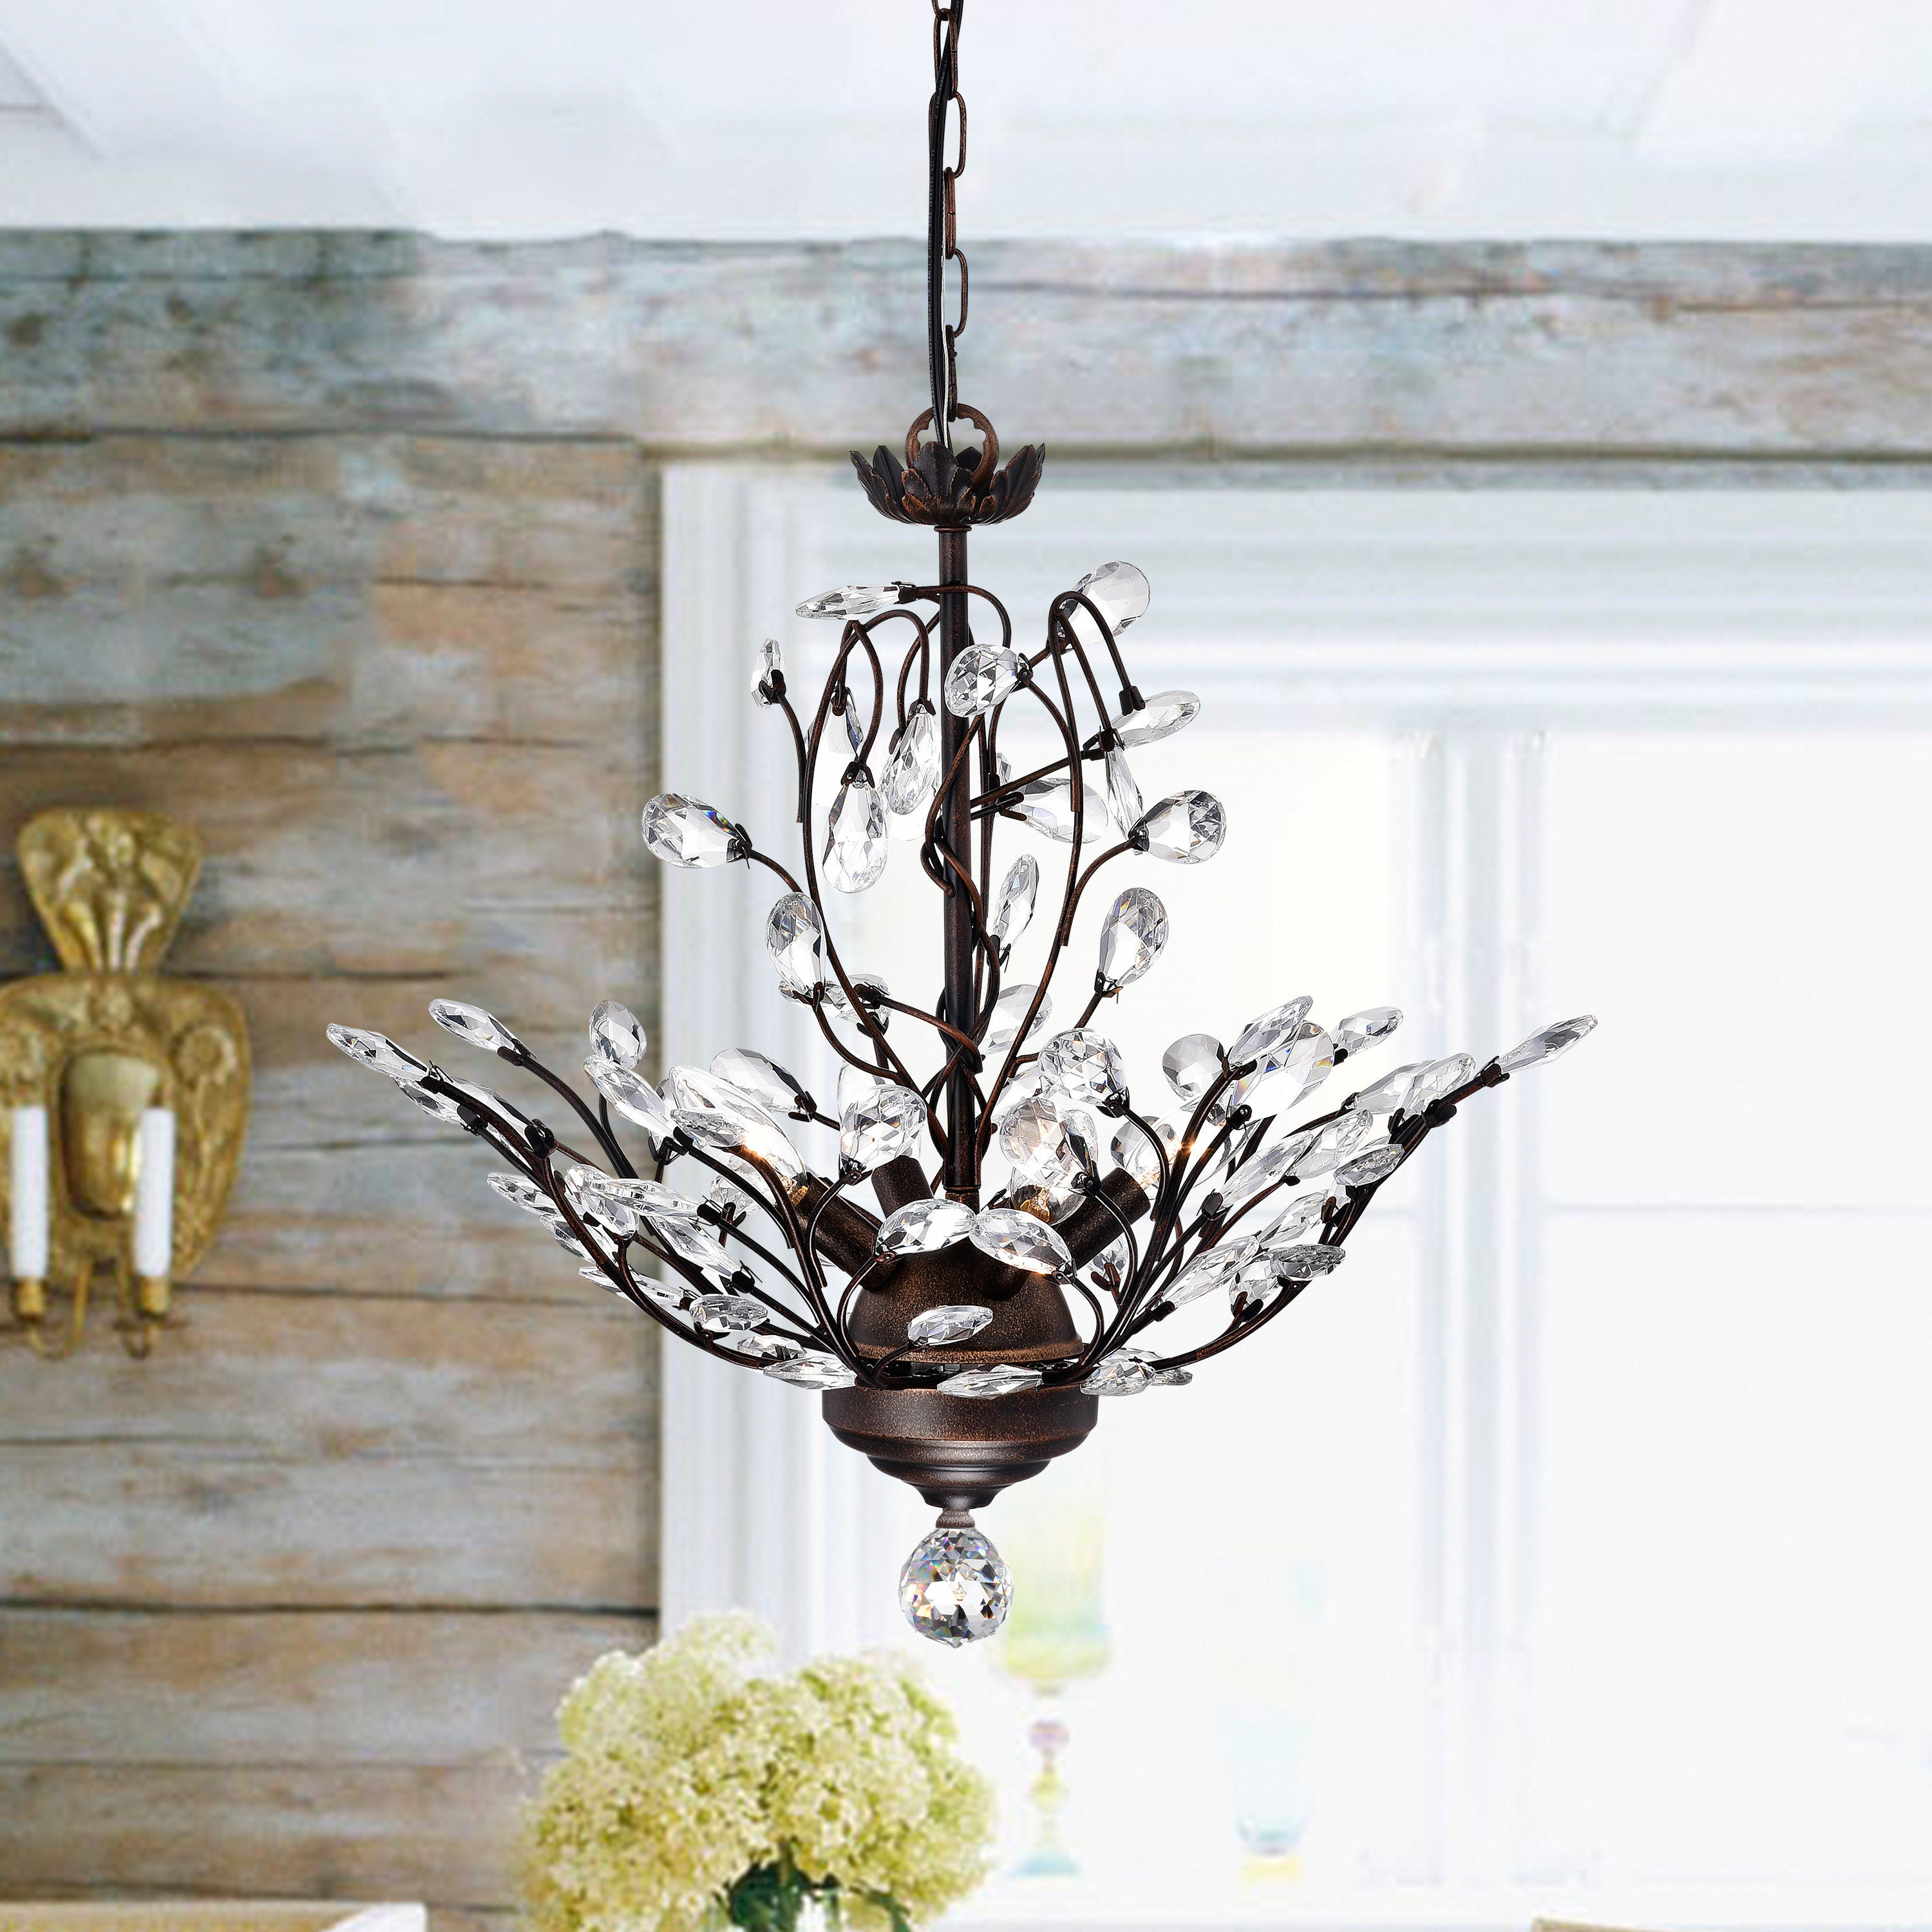 Hermione 5 Light Drum Chandeliers Regarding Most Up To Date Farmhouse & Rustic Willa Arlo Interiors Chandeliers (View 10 of 20)